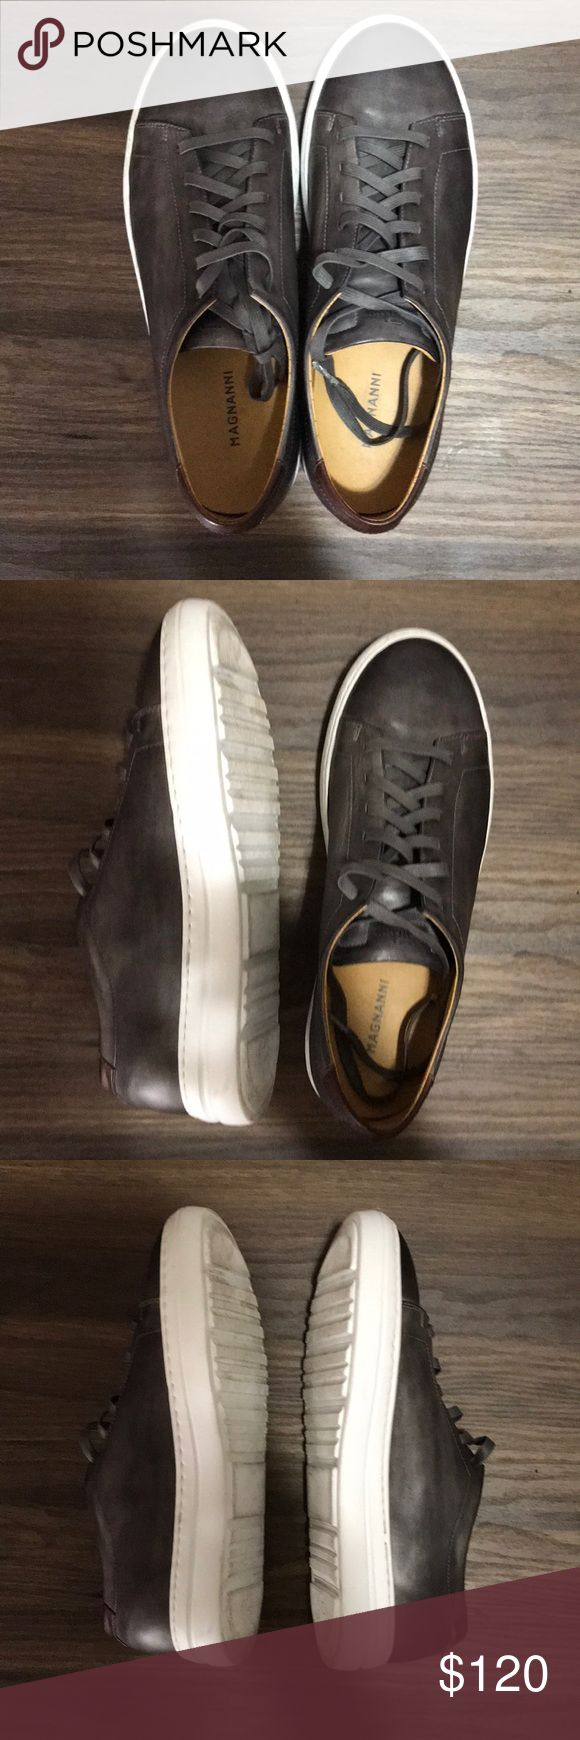 Magnanni Shoes Size 9.5 M The Bartolo Grey is a luxurious cup sole fashion sneak...